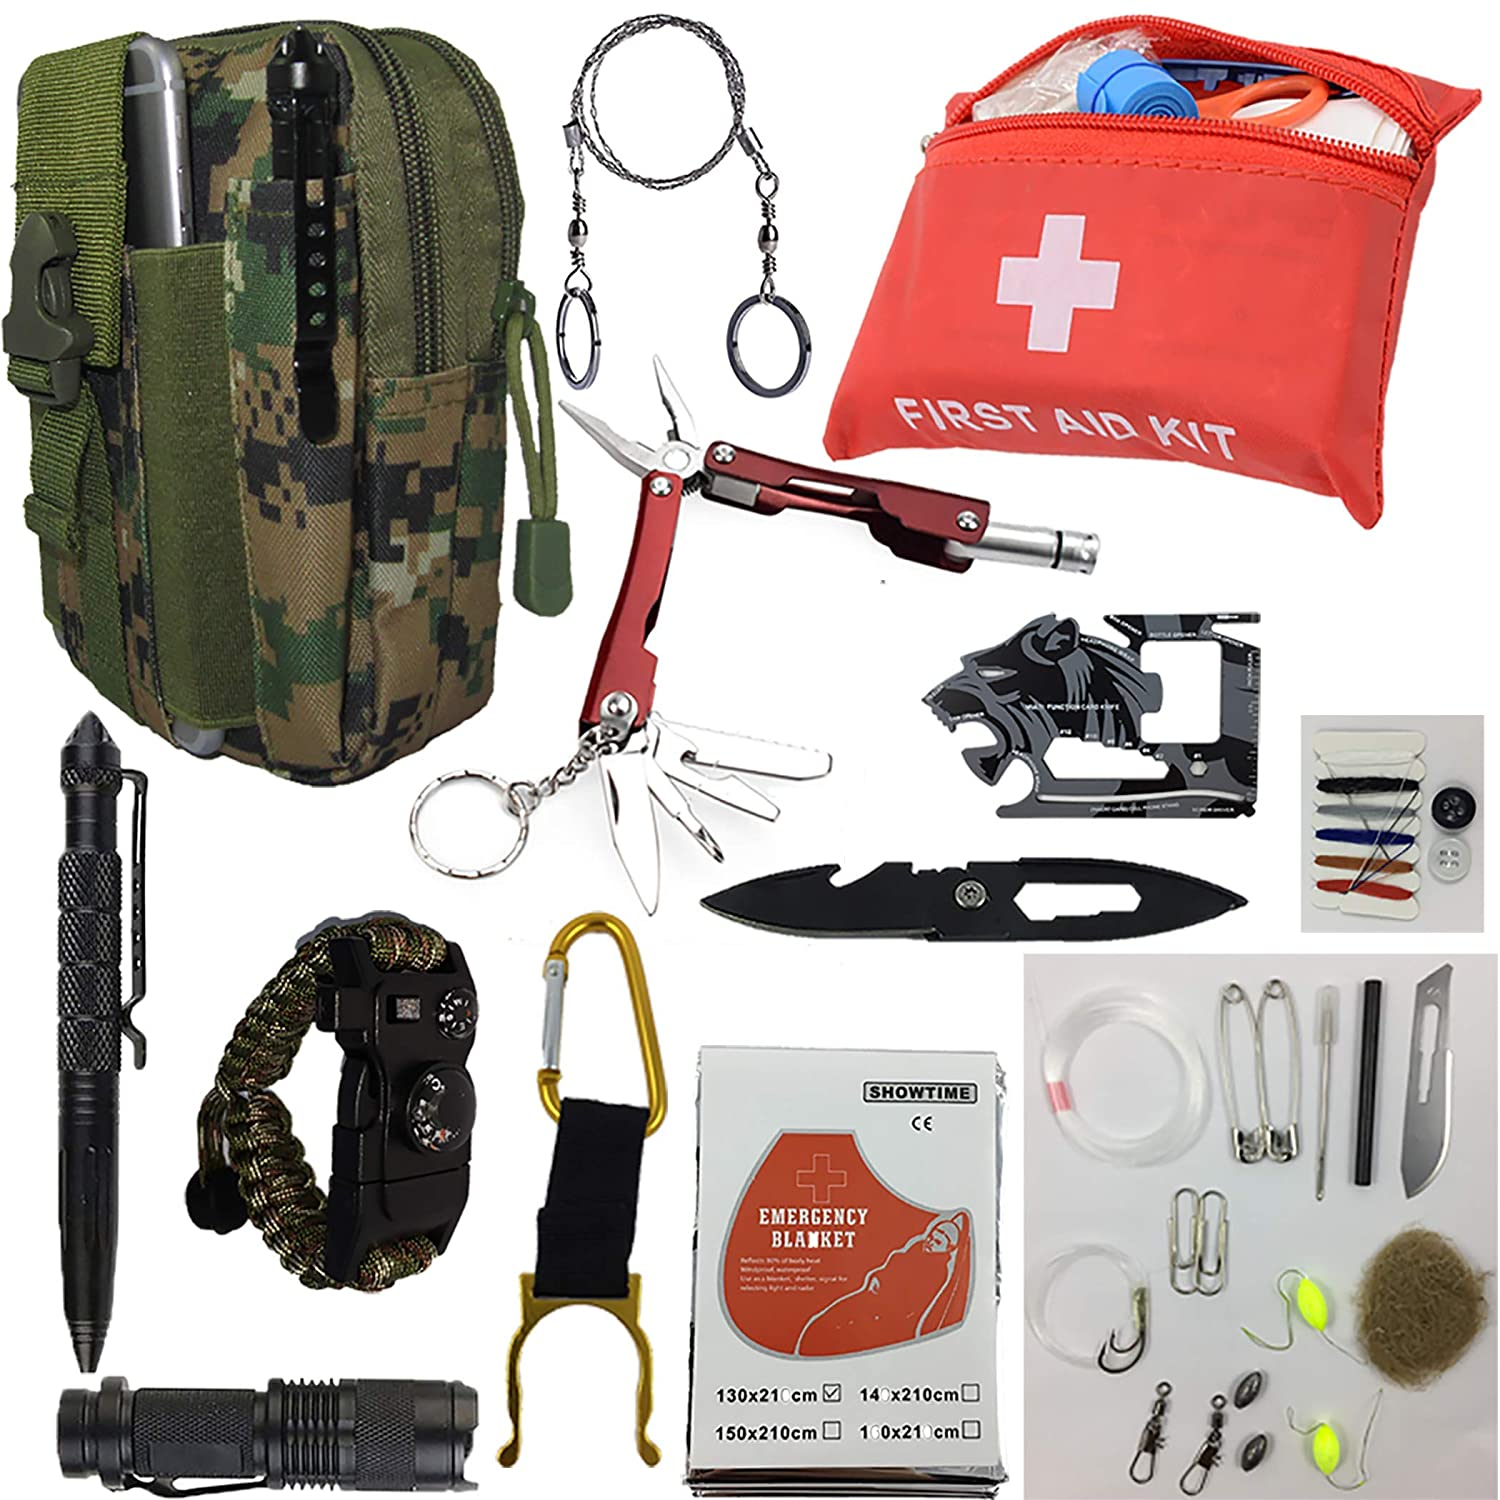 50+ in 1 Emergency Survival Gear & First Aid kit; Include all Essential and cool tools those use for Camping Biking Hunting Outdoor SOS Birthday Gift, All (Men, Women, Boys & Girls) need this cool kit [並行輸入品] B07R4VZY2D